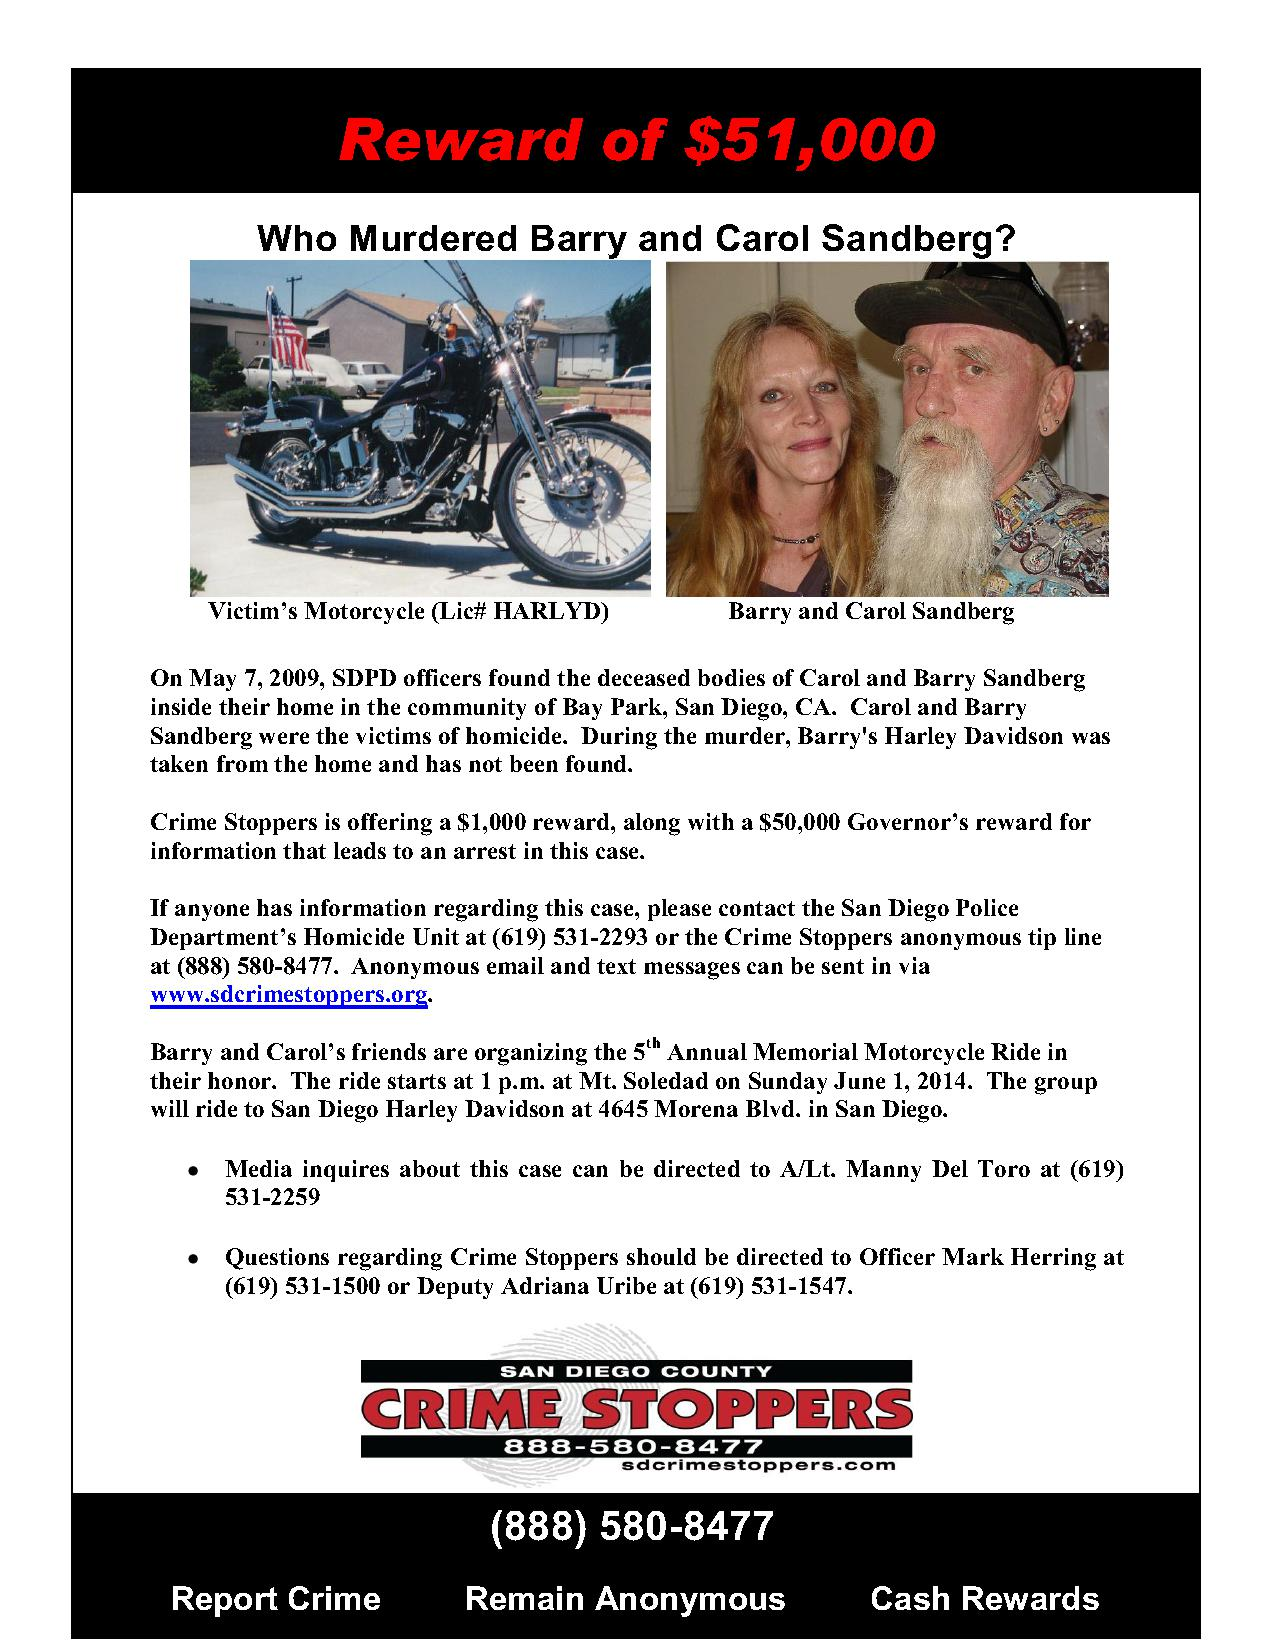 052914 Who Murdered Carol and Barry Sandberg_1